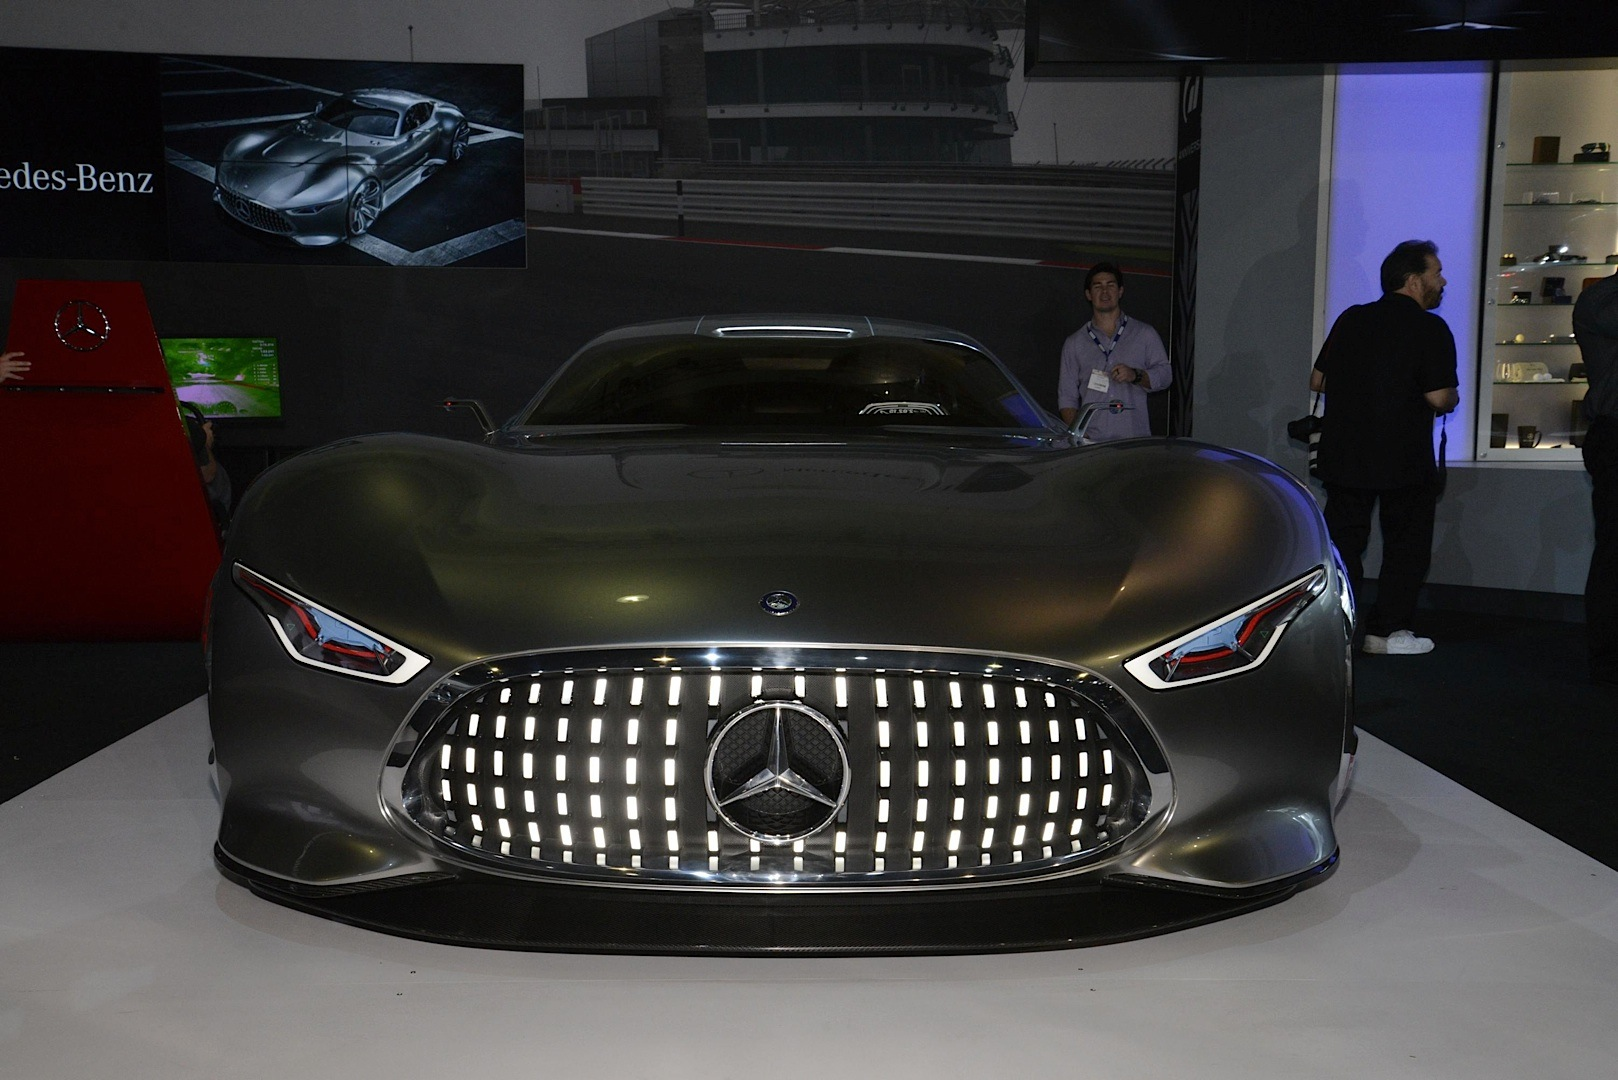 Mercedes Benz Amg Vision Gran Turismo Looks Badass Live As